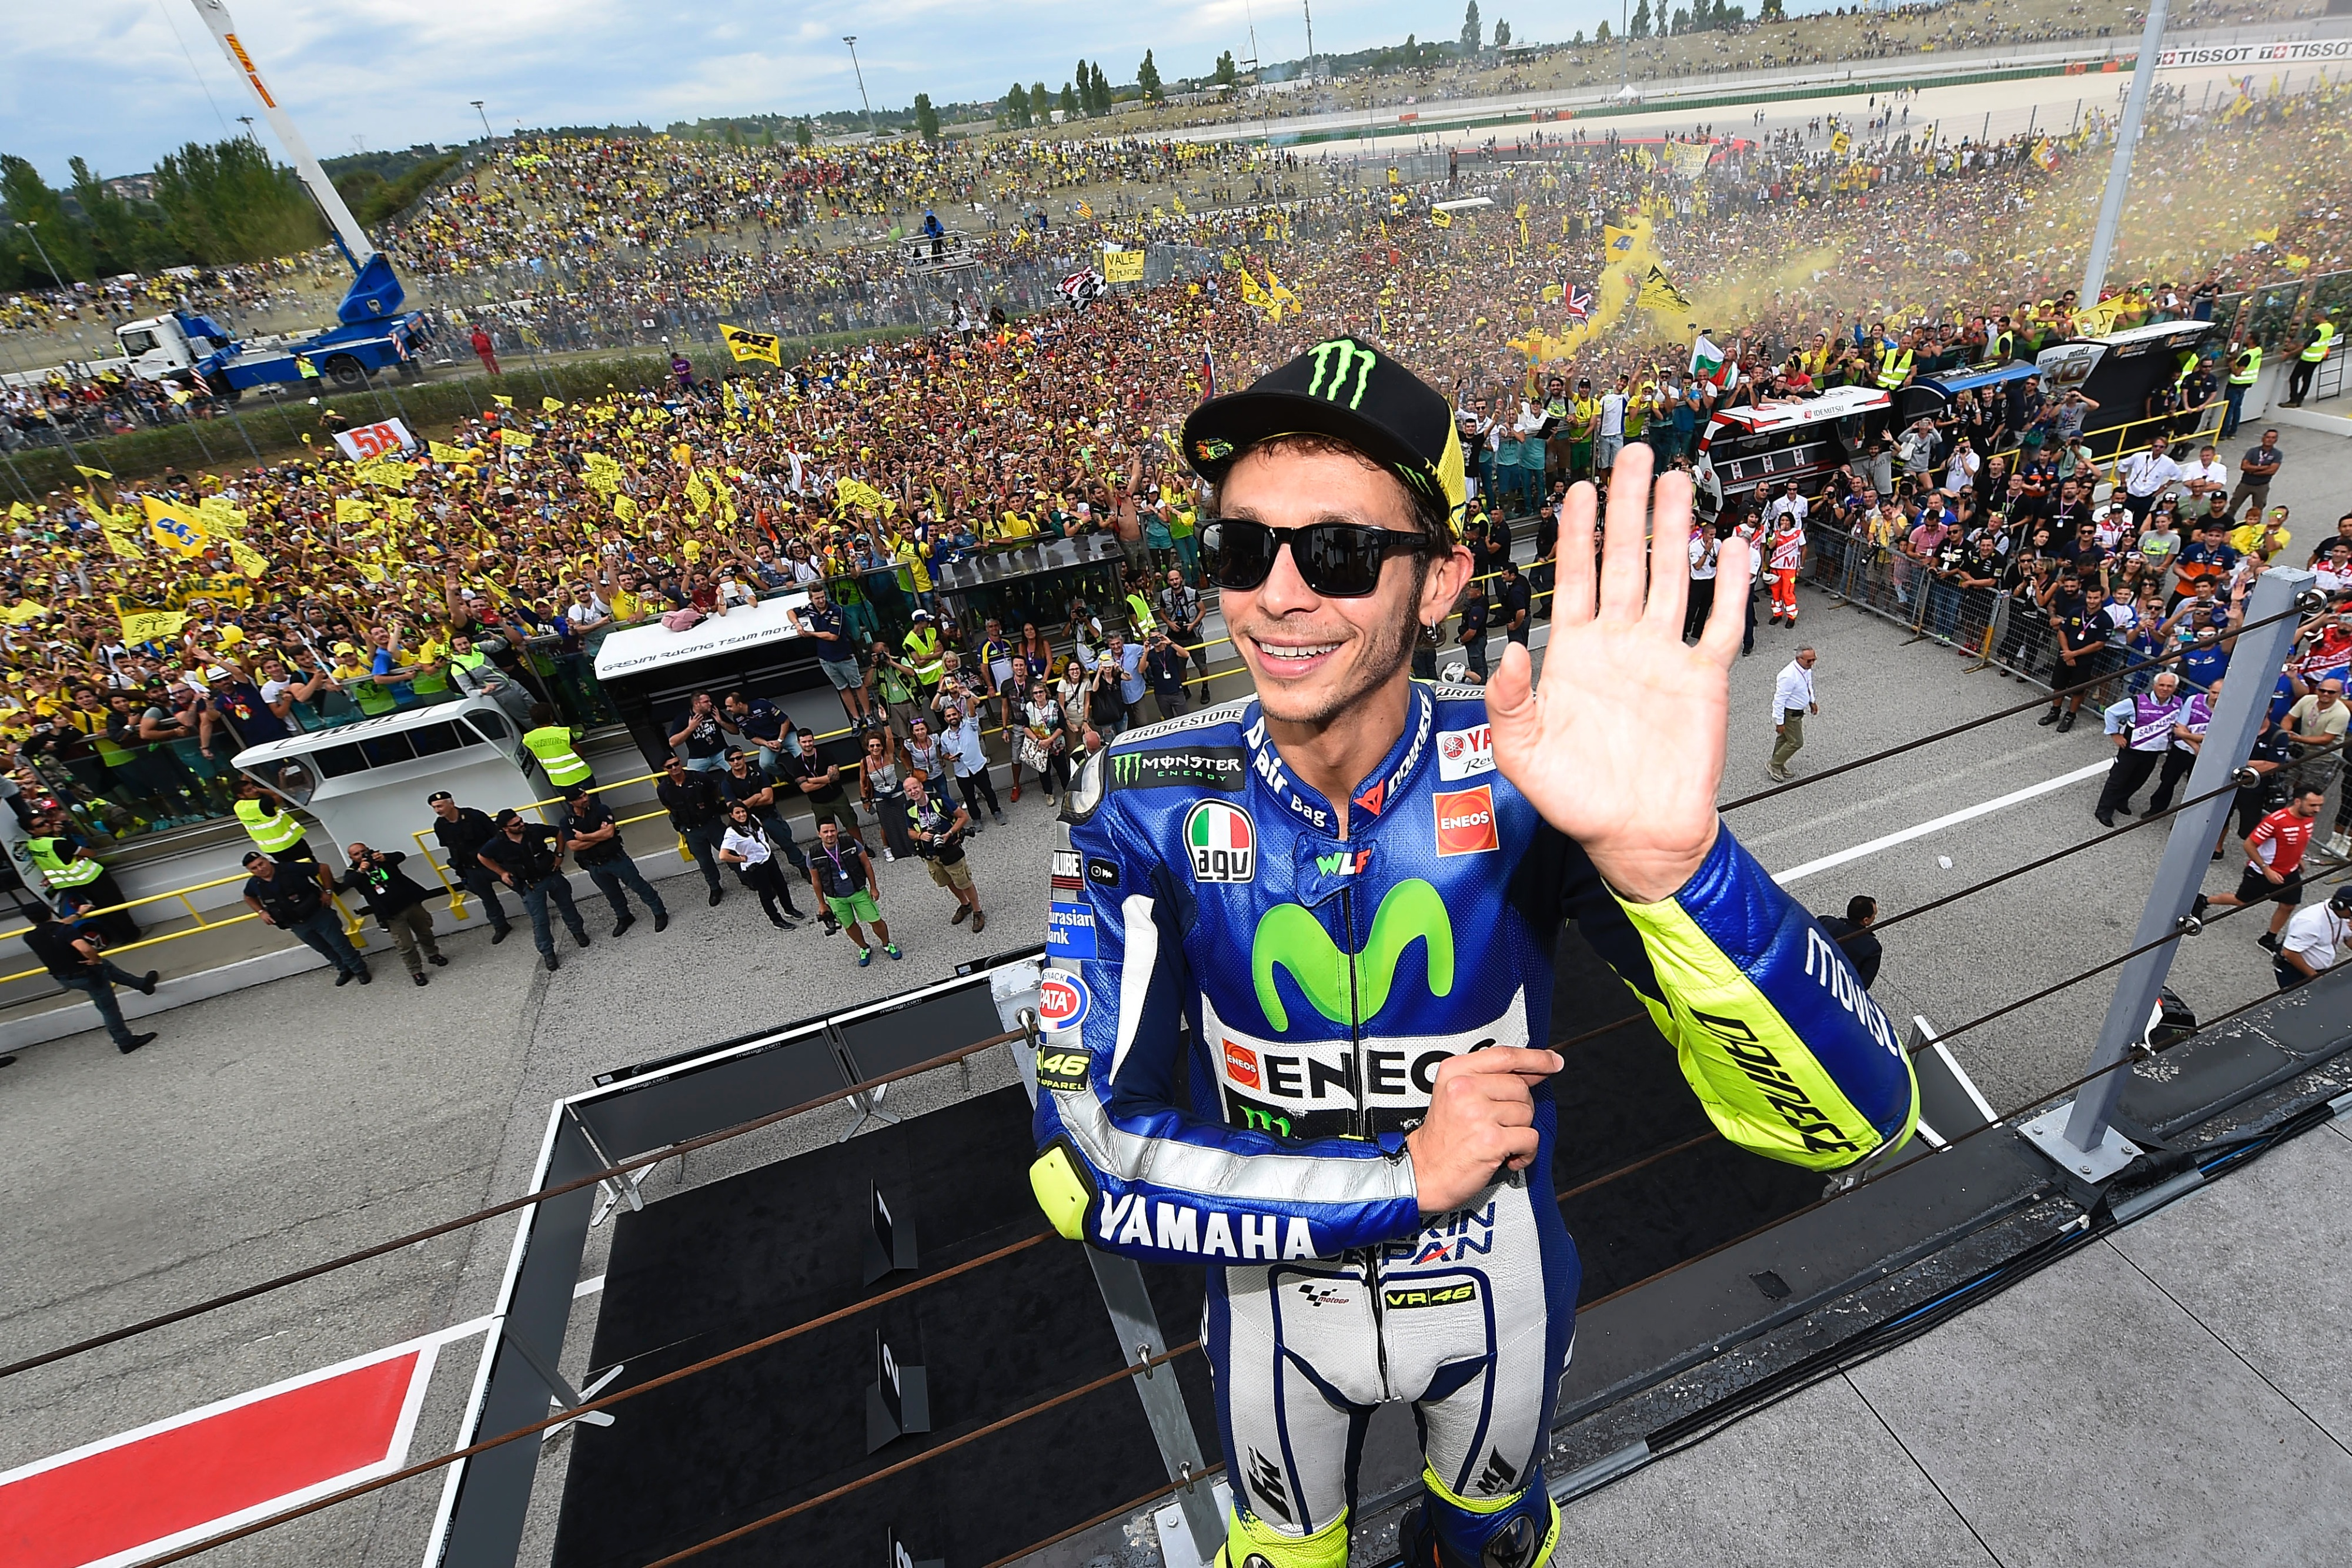 Rossi Takes Fifth in Misano Mania - Yamaha Racing